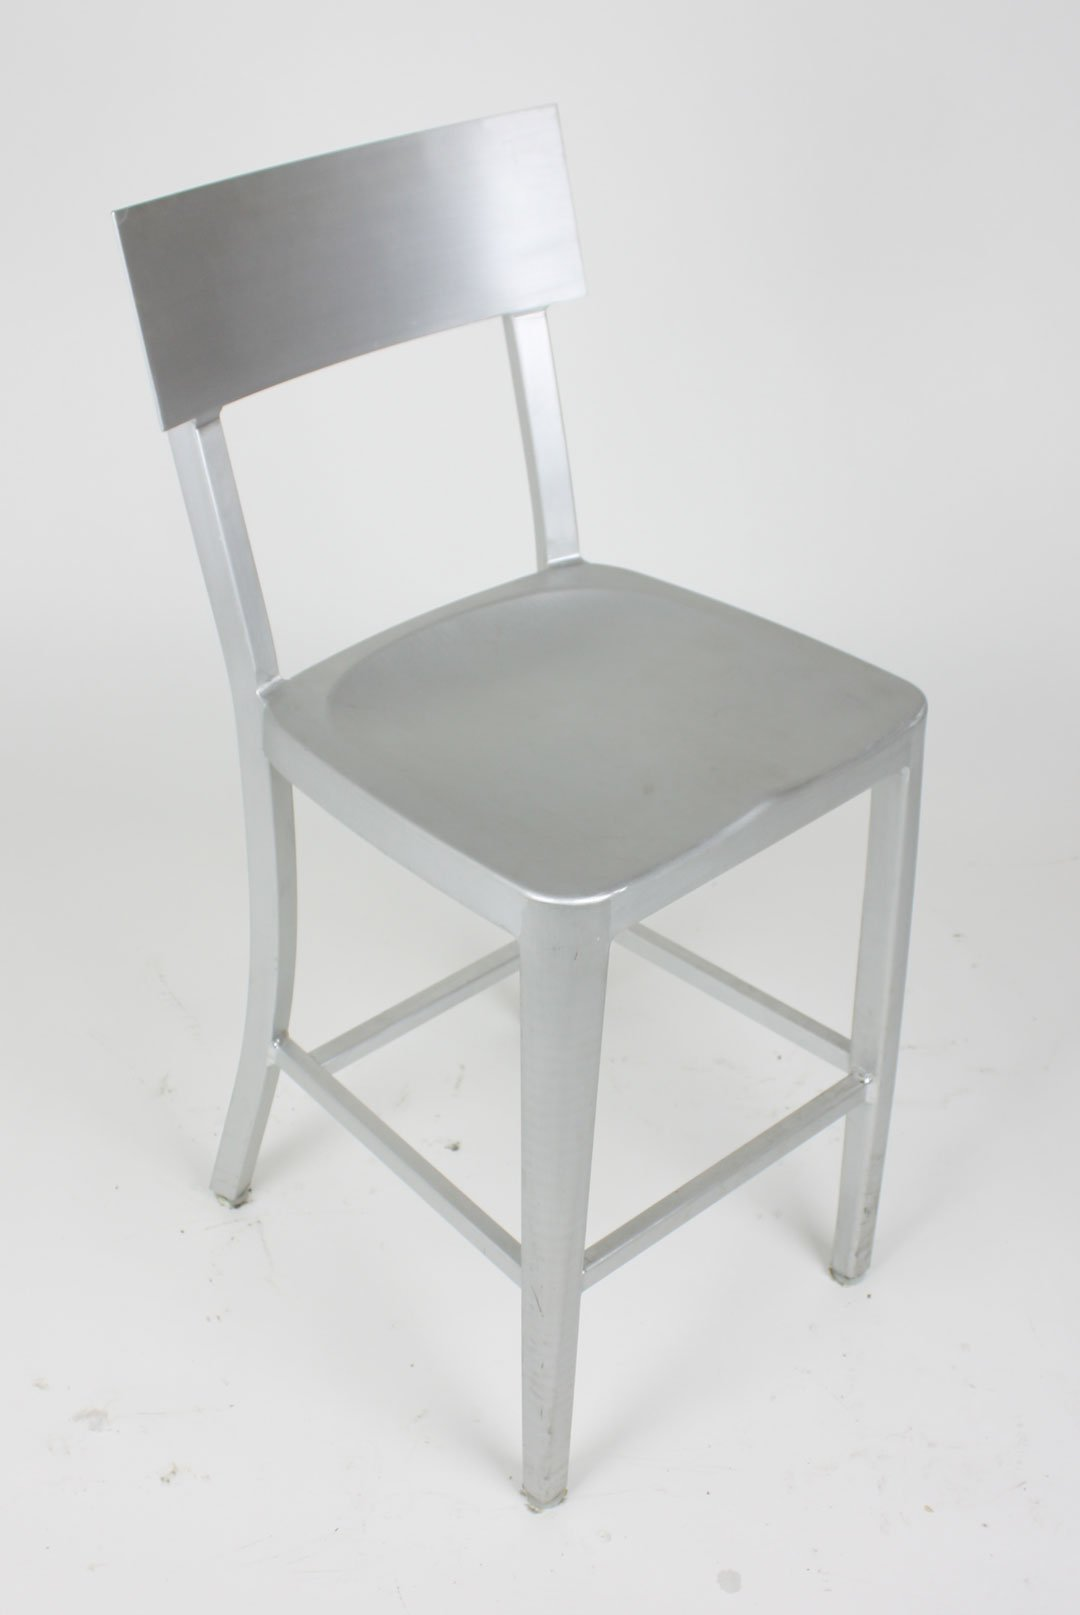 Charmant Modern Cafe Dining Chair In Brushed Aluminum Counter Height